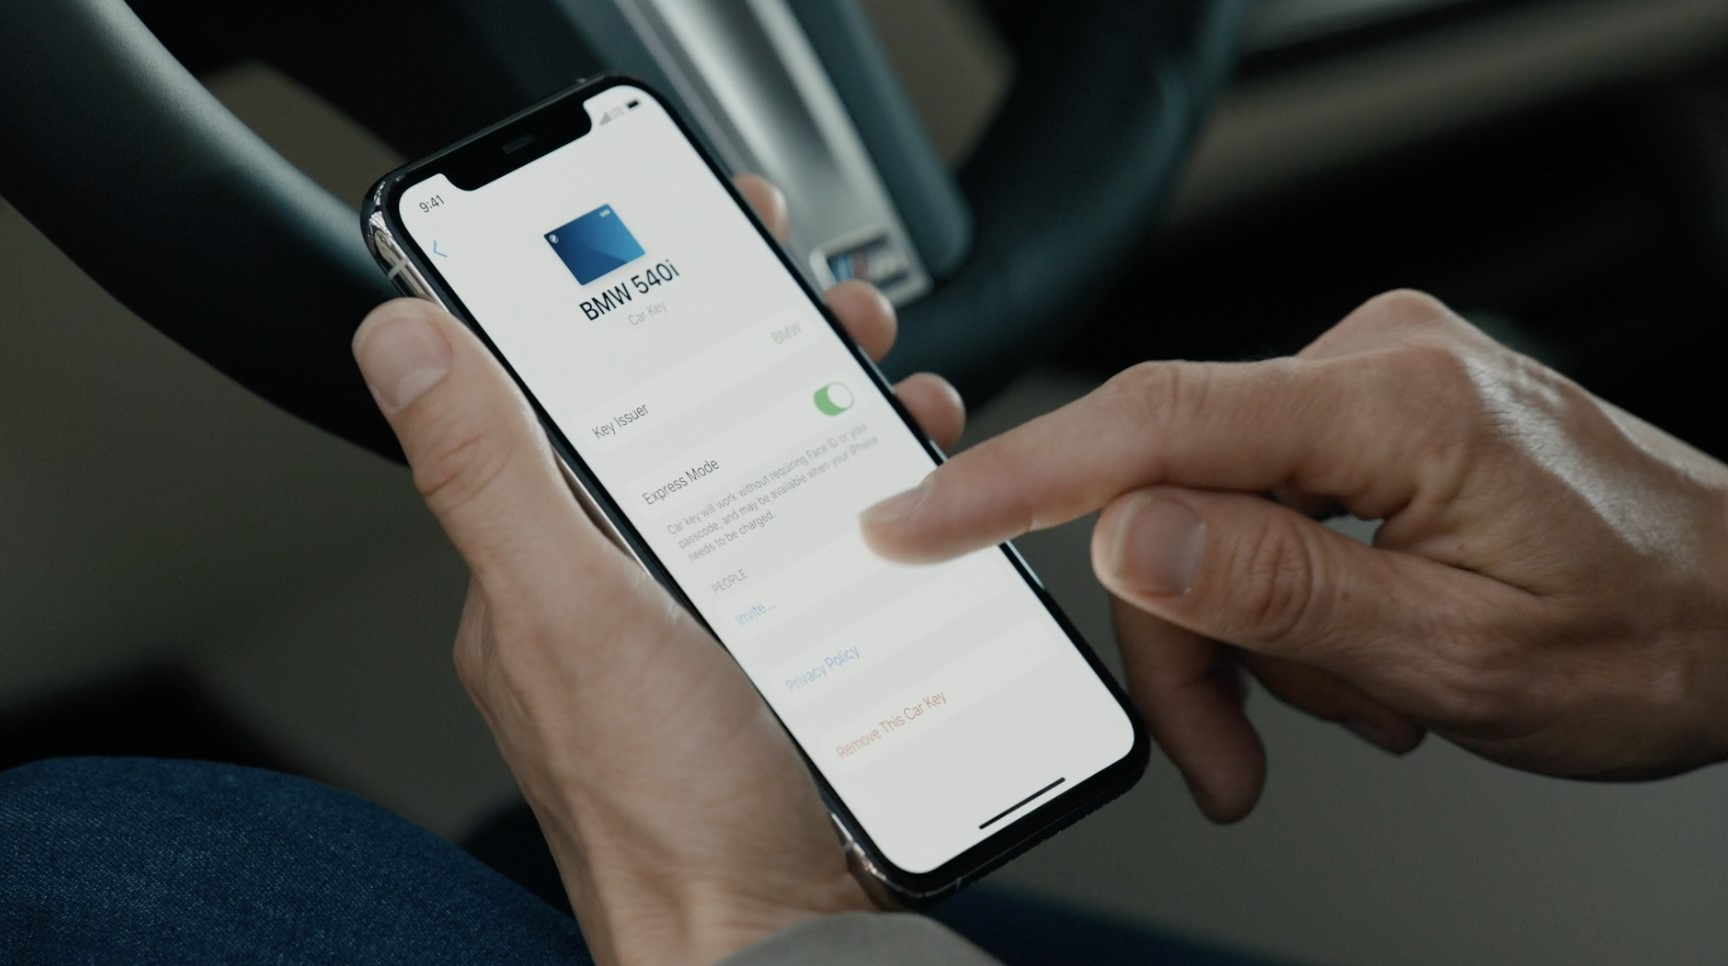 Apple will be adding an app called Digital Key to the App Store for all devices running the latest iOS 13, which BMW drivers will be able to use to unlock their cars.